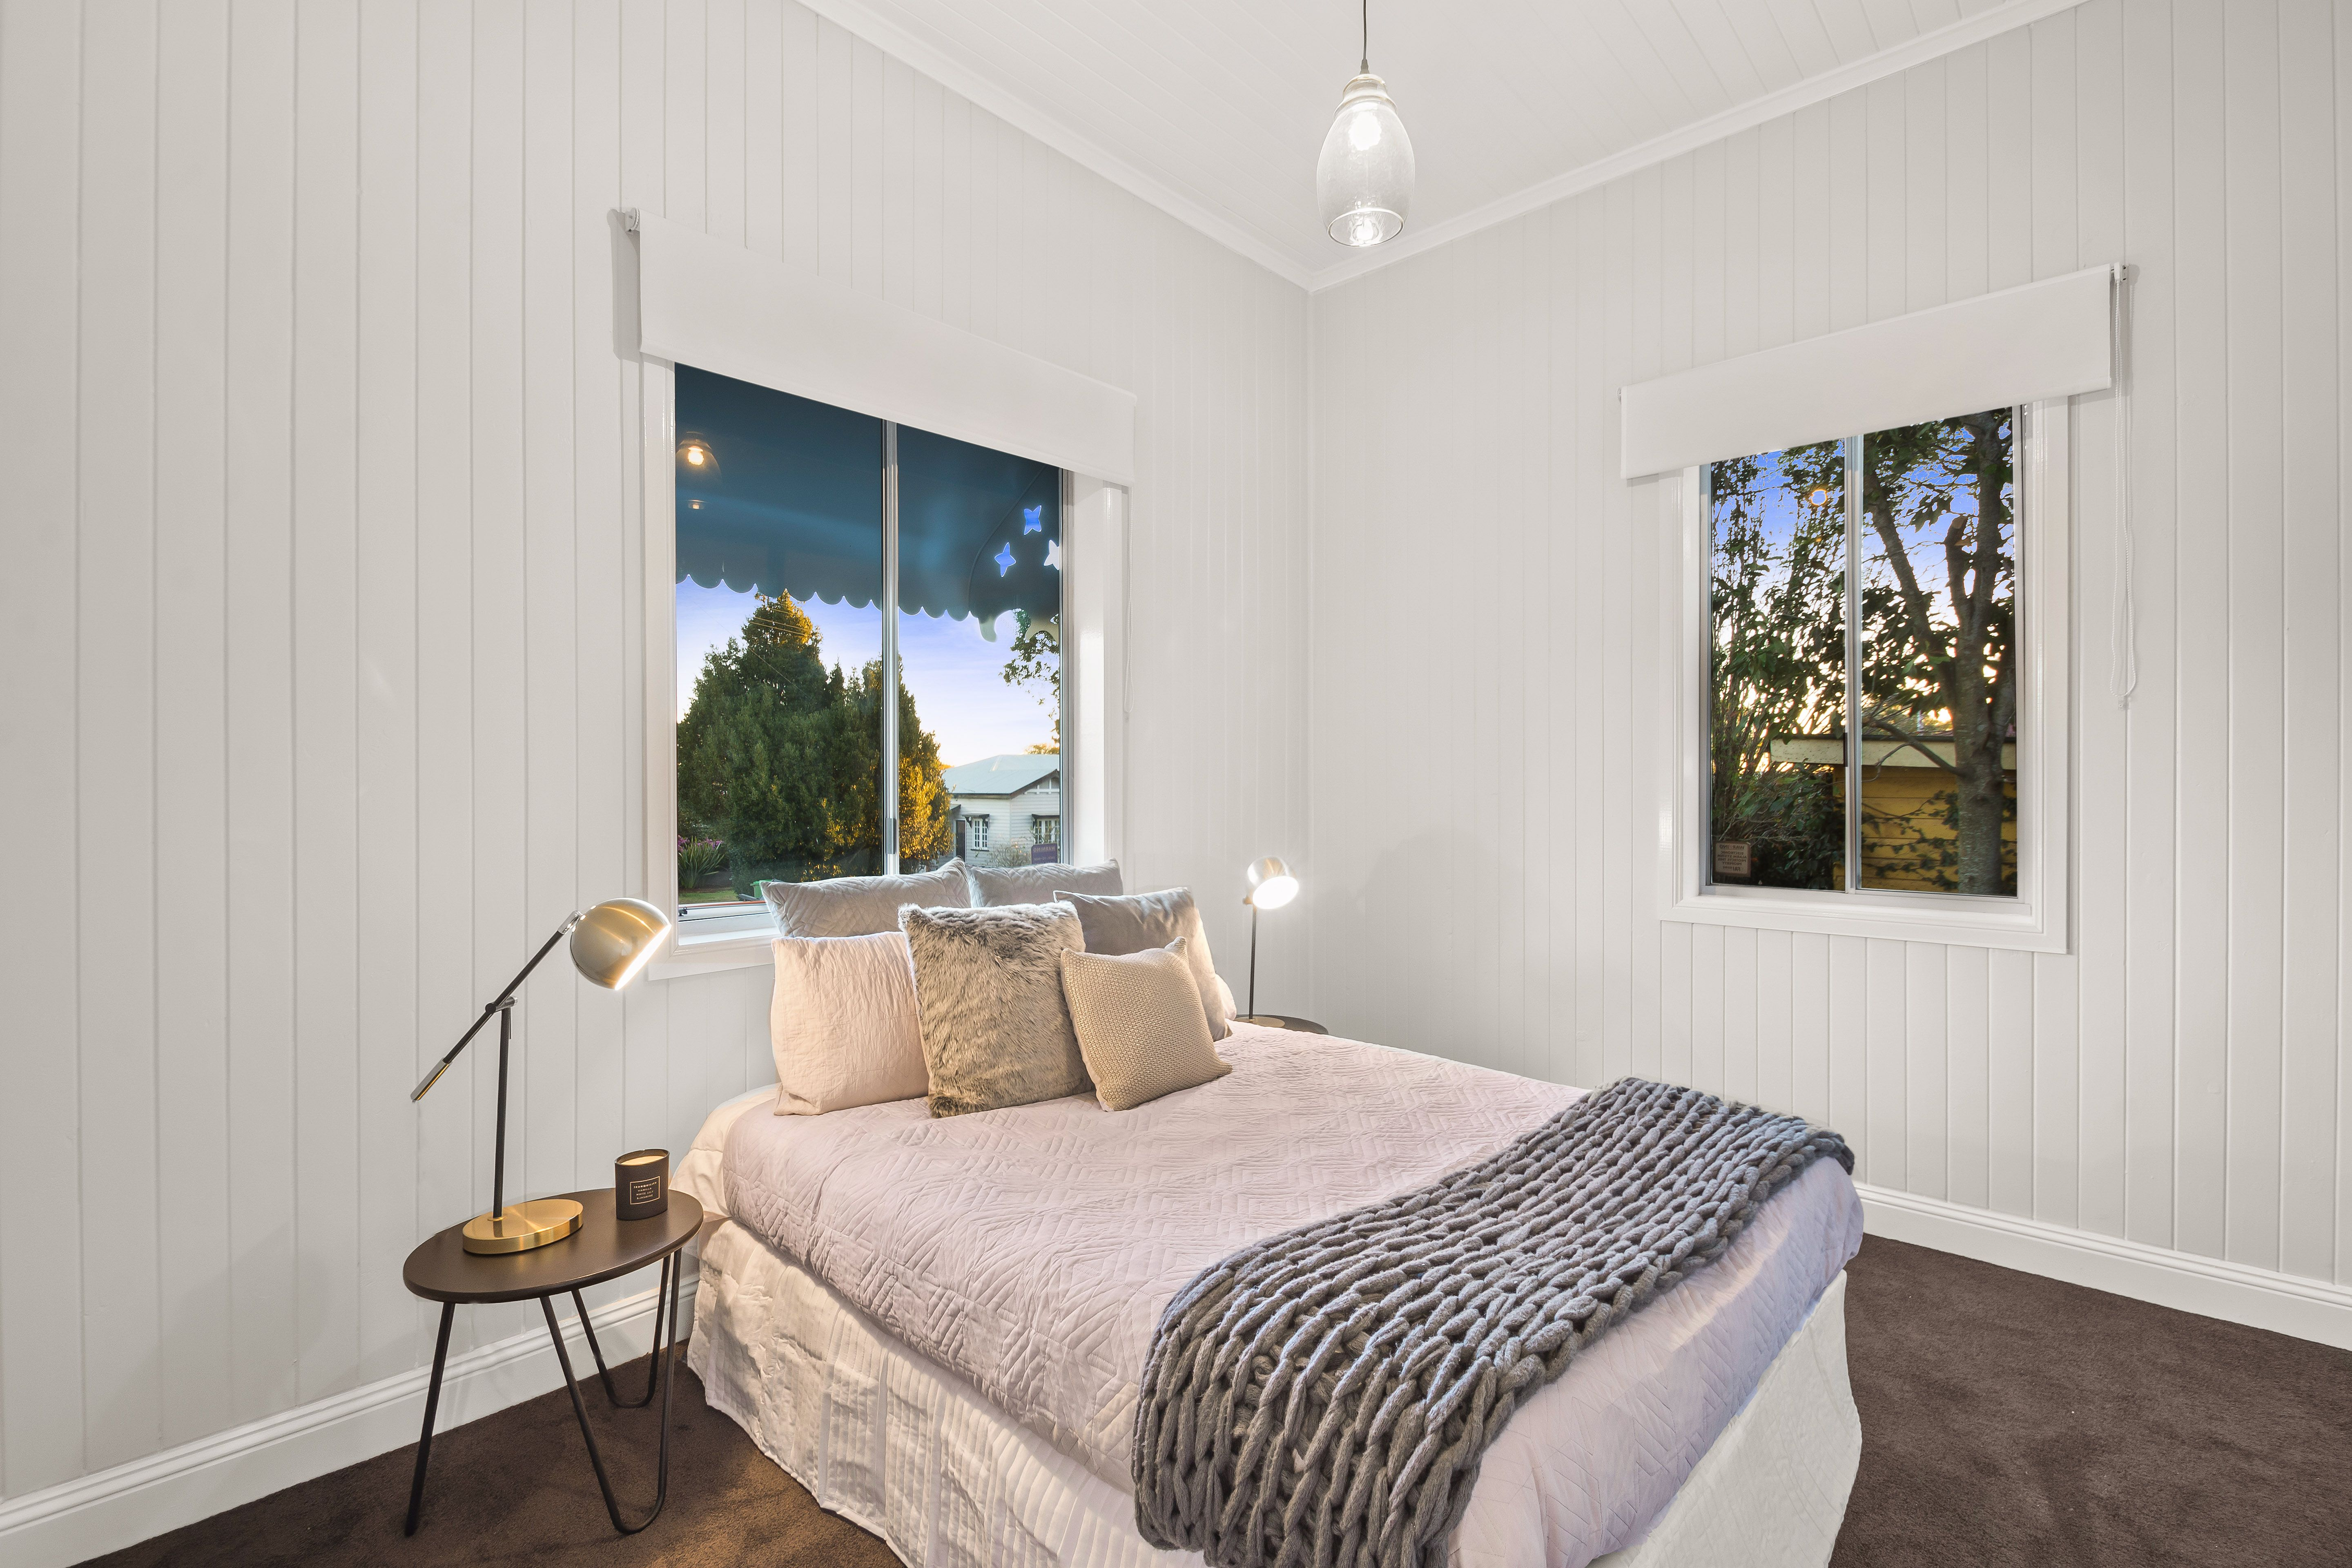 Master Bedroom At Project Geoffrey In Toowoomba Queensland Renovation Therenolads House And Home Magazine Home